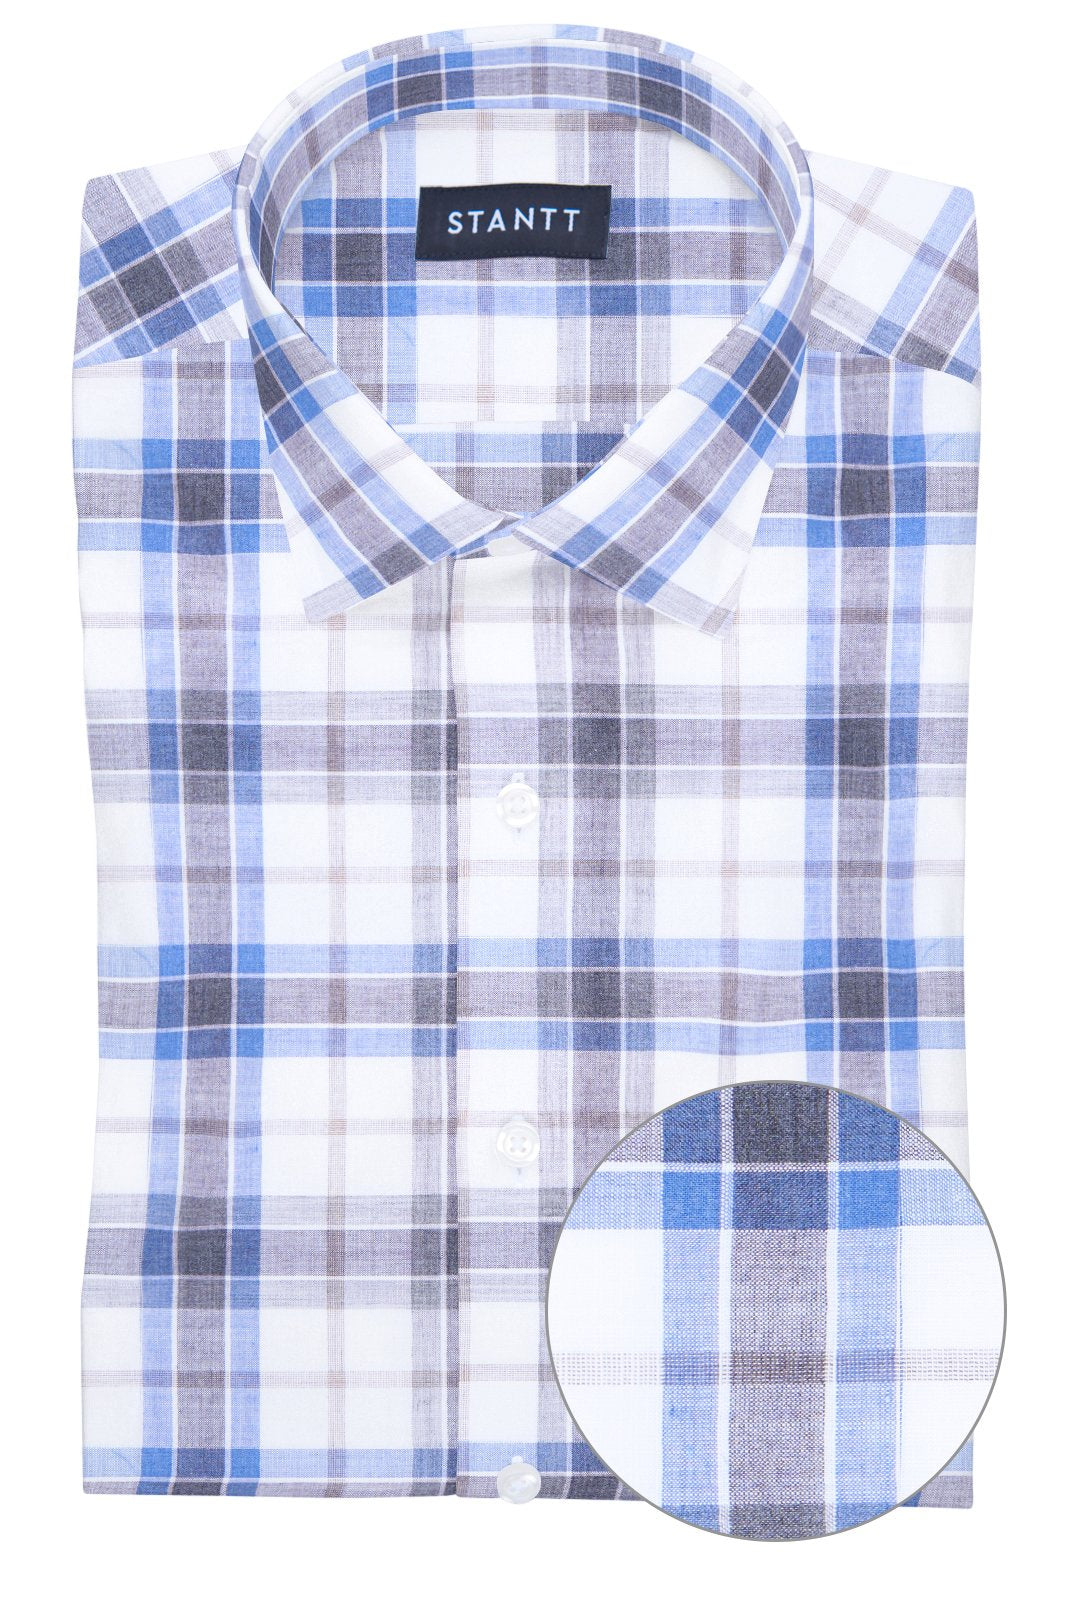 Melange Smoke Blue Plaid: Modified-Spread Collar, Barrel Cuff